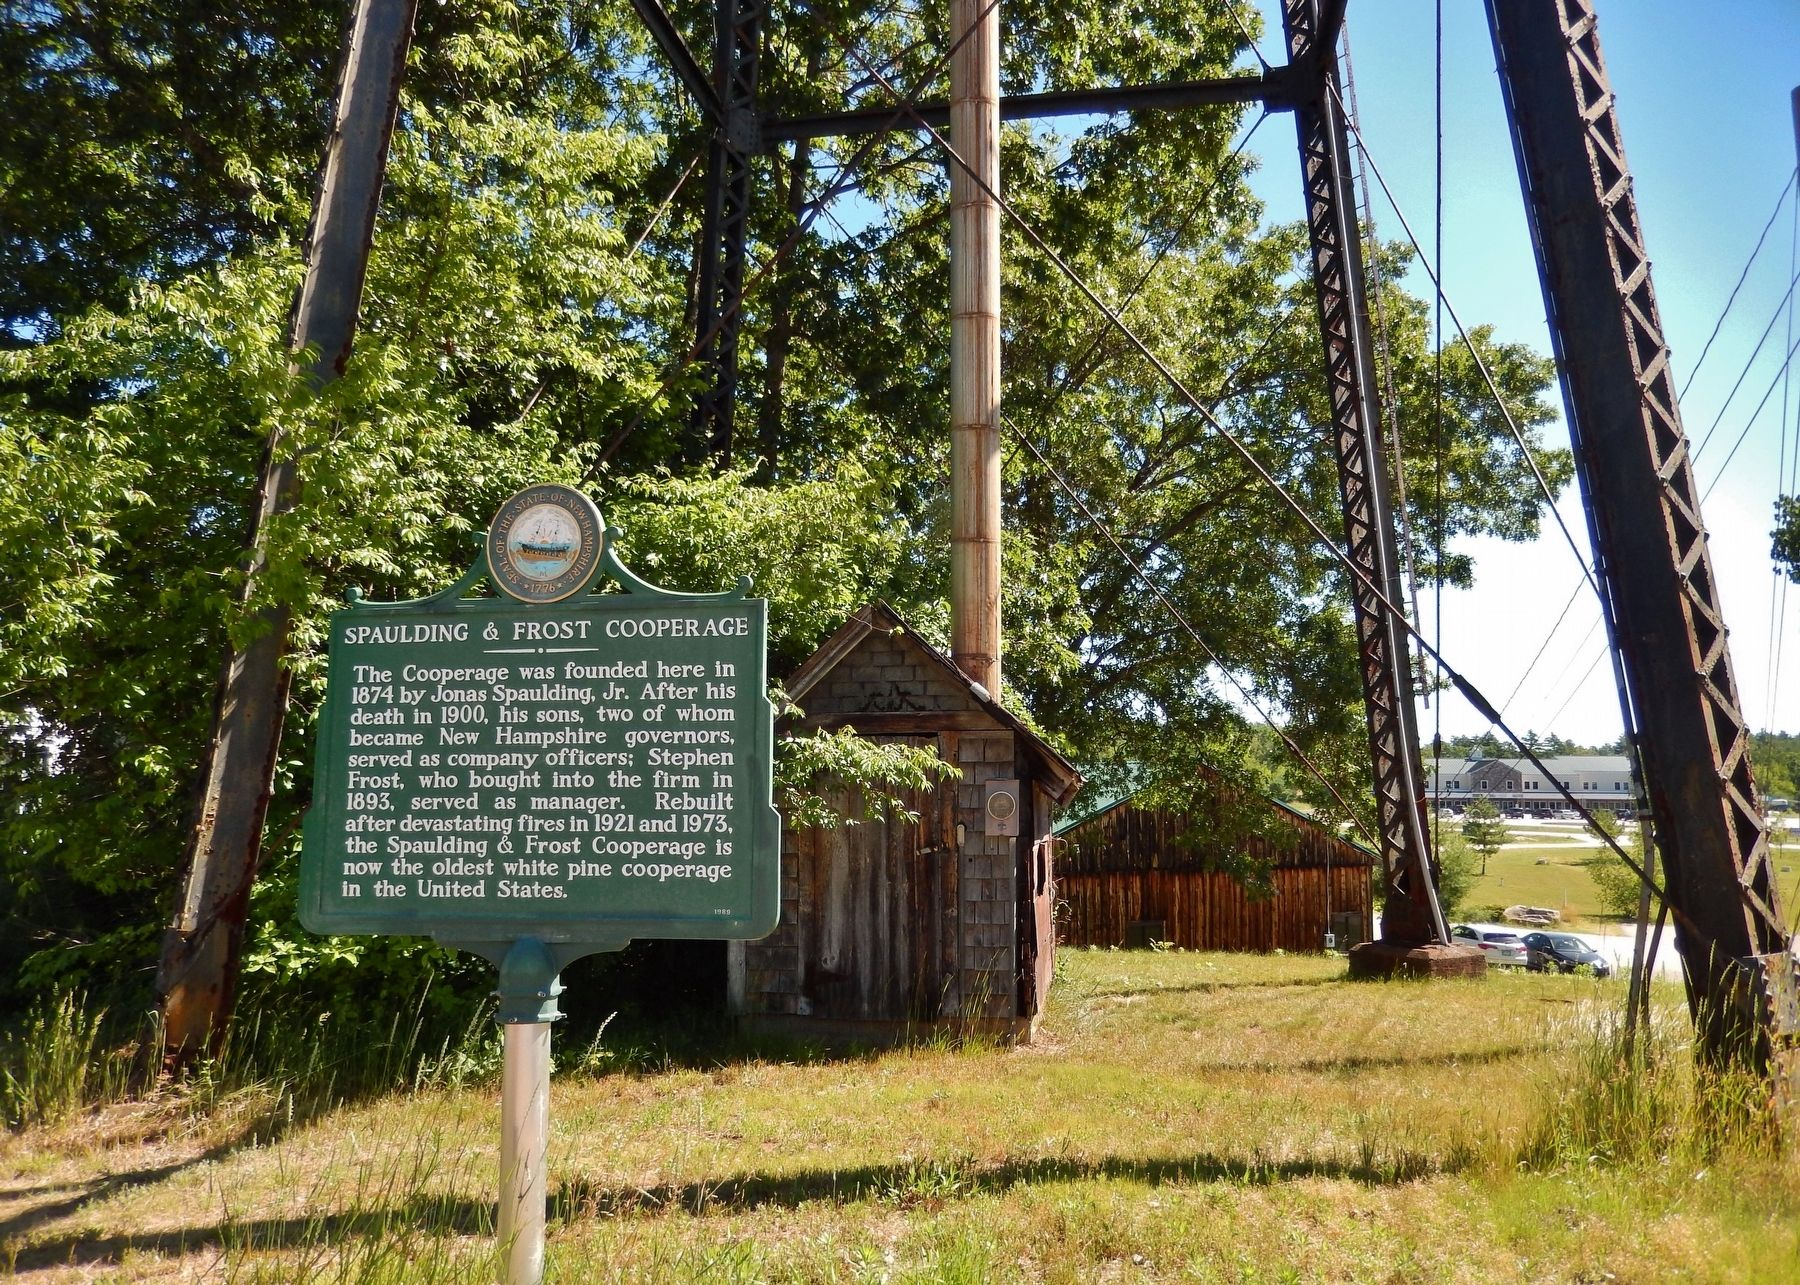 Spaulding & Frost Cooperage Marker (<i>wide view</i>) image. Click for full size.